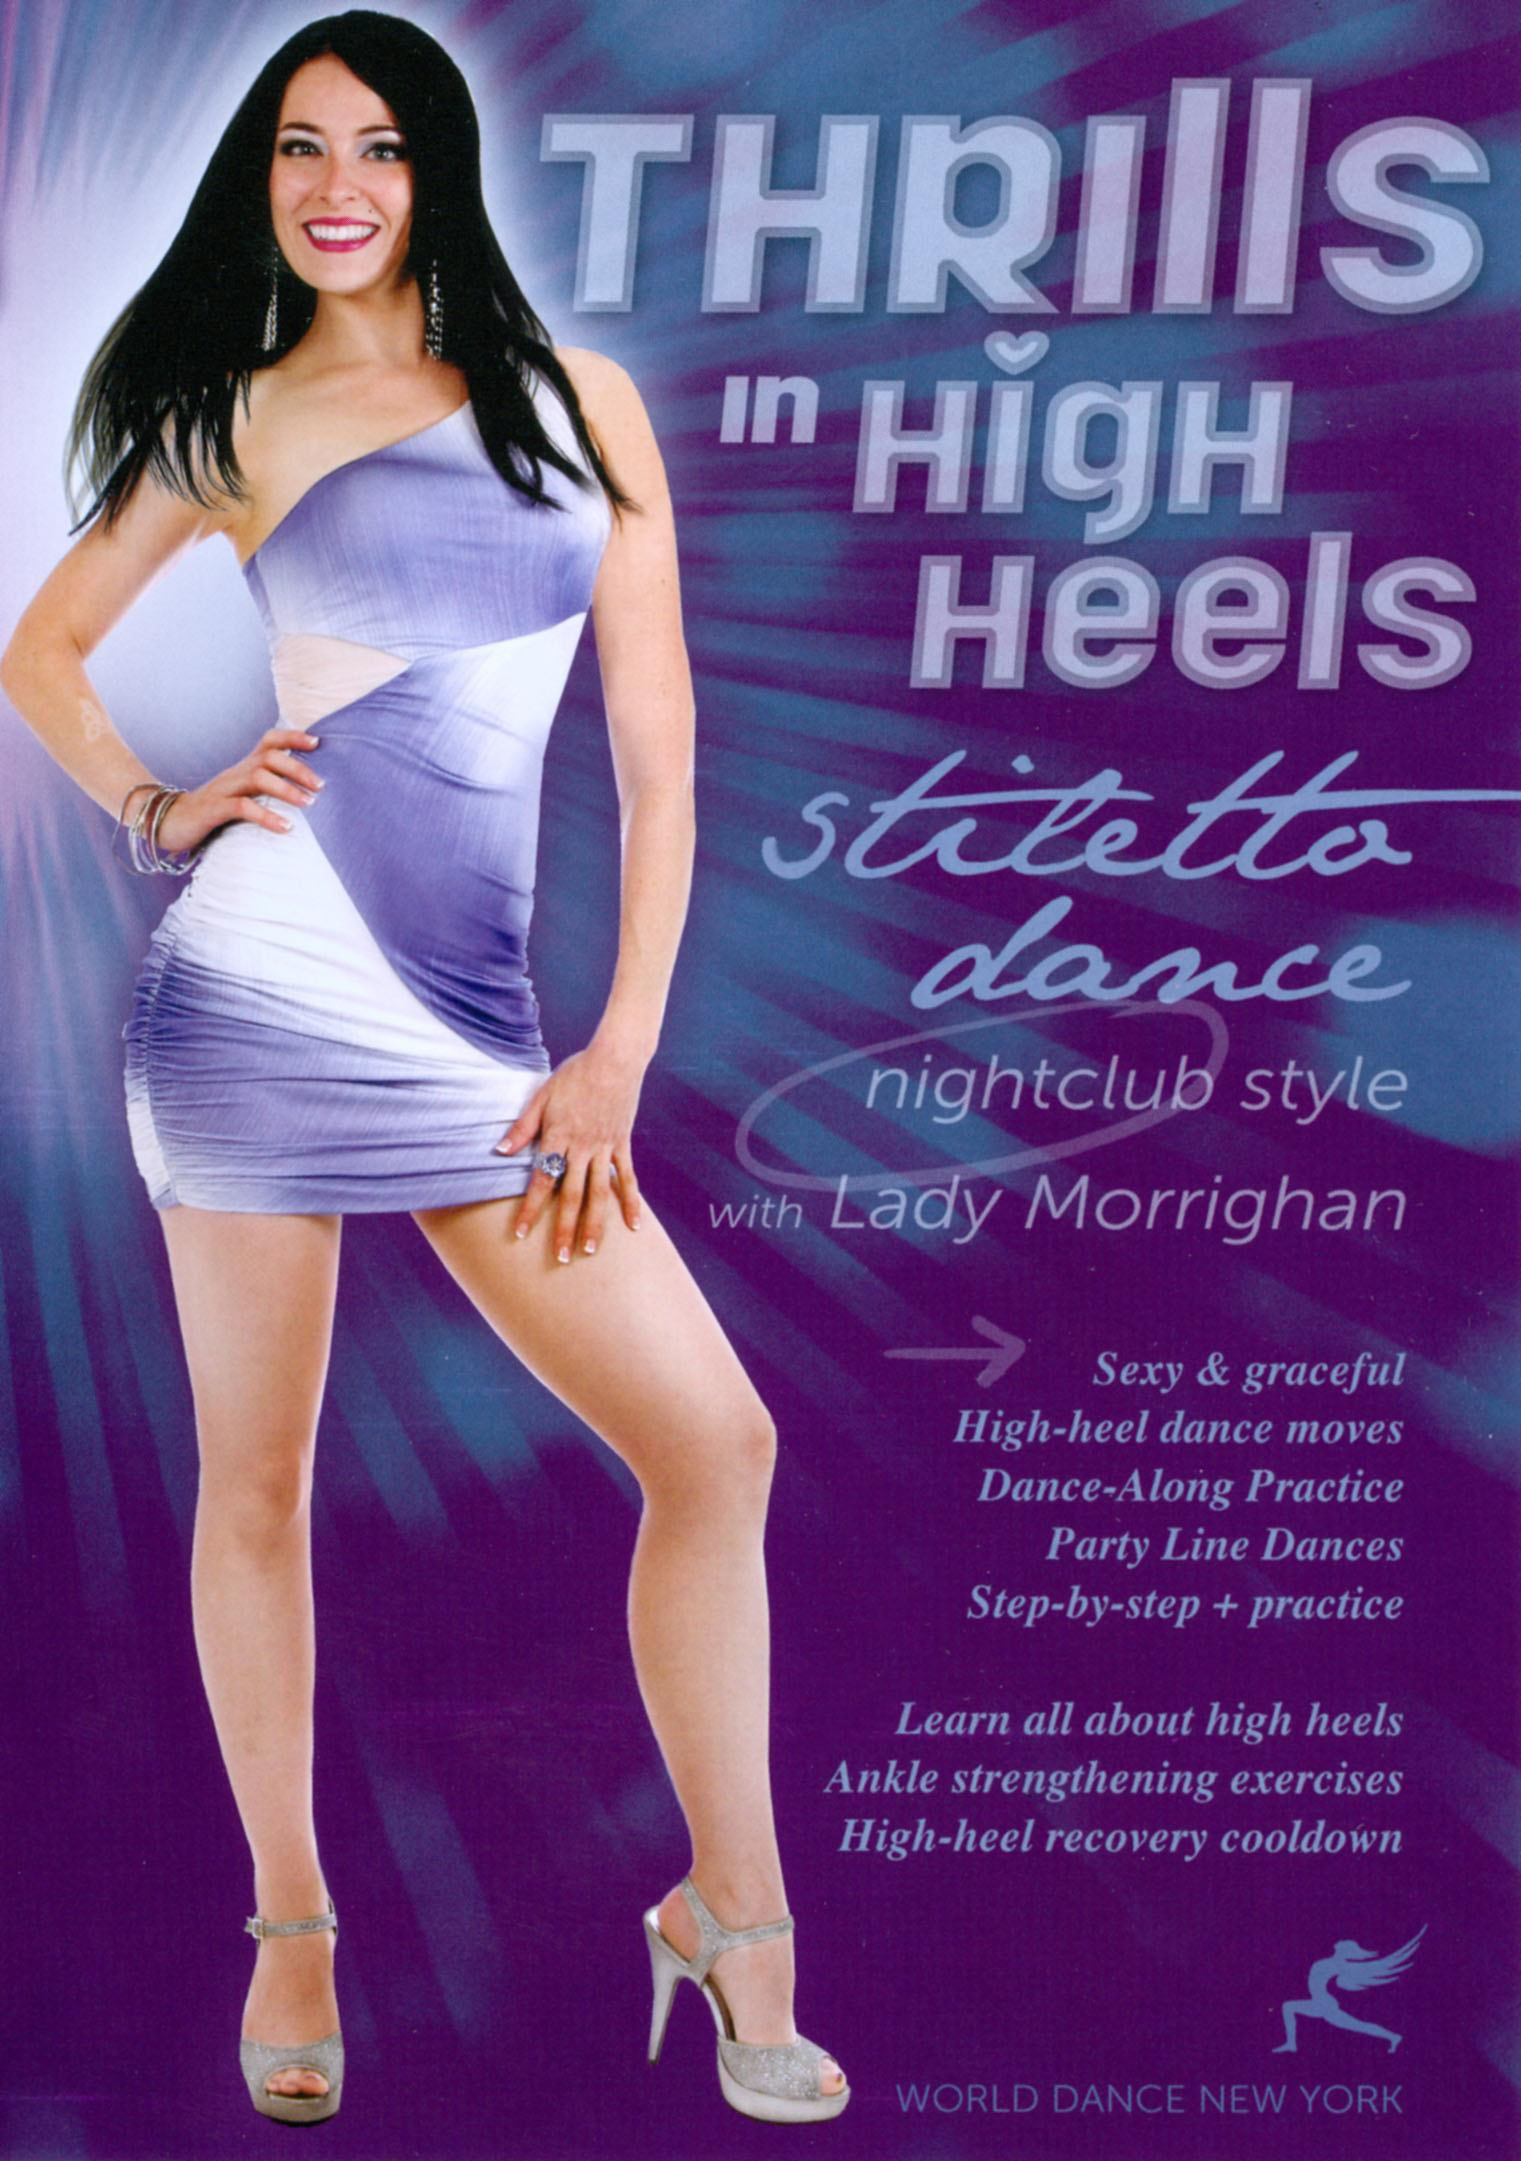 Thrills in High Heels: Stiletto Dance Nightclub Style with Lady Morrighan